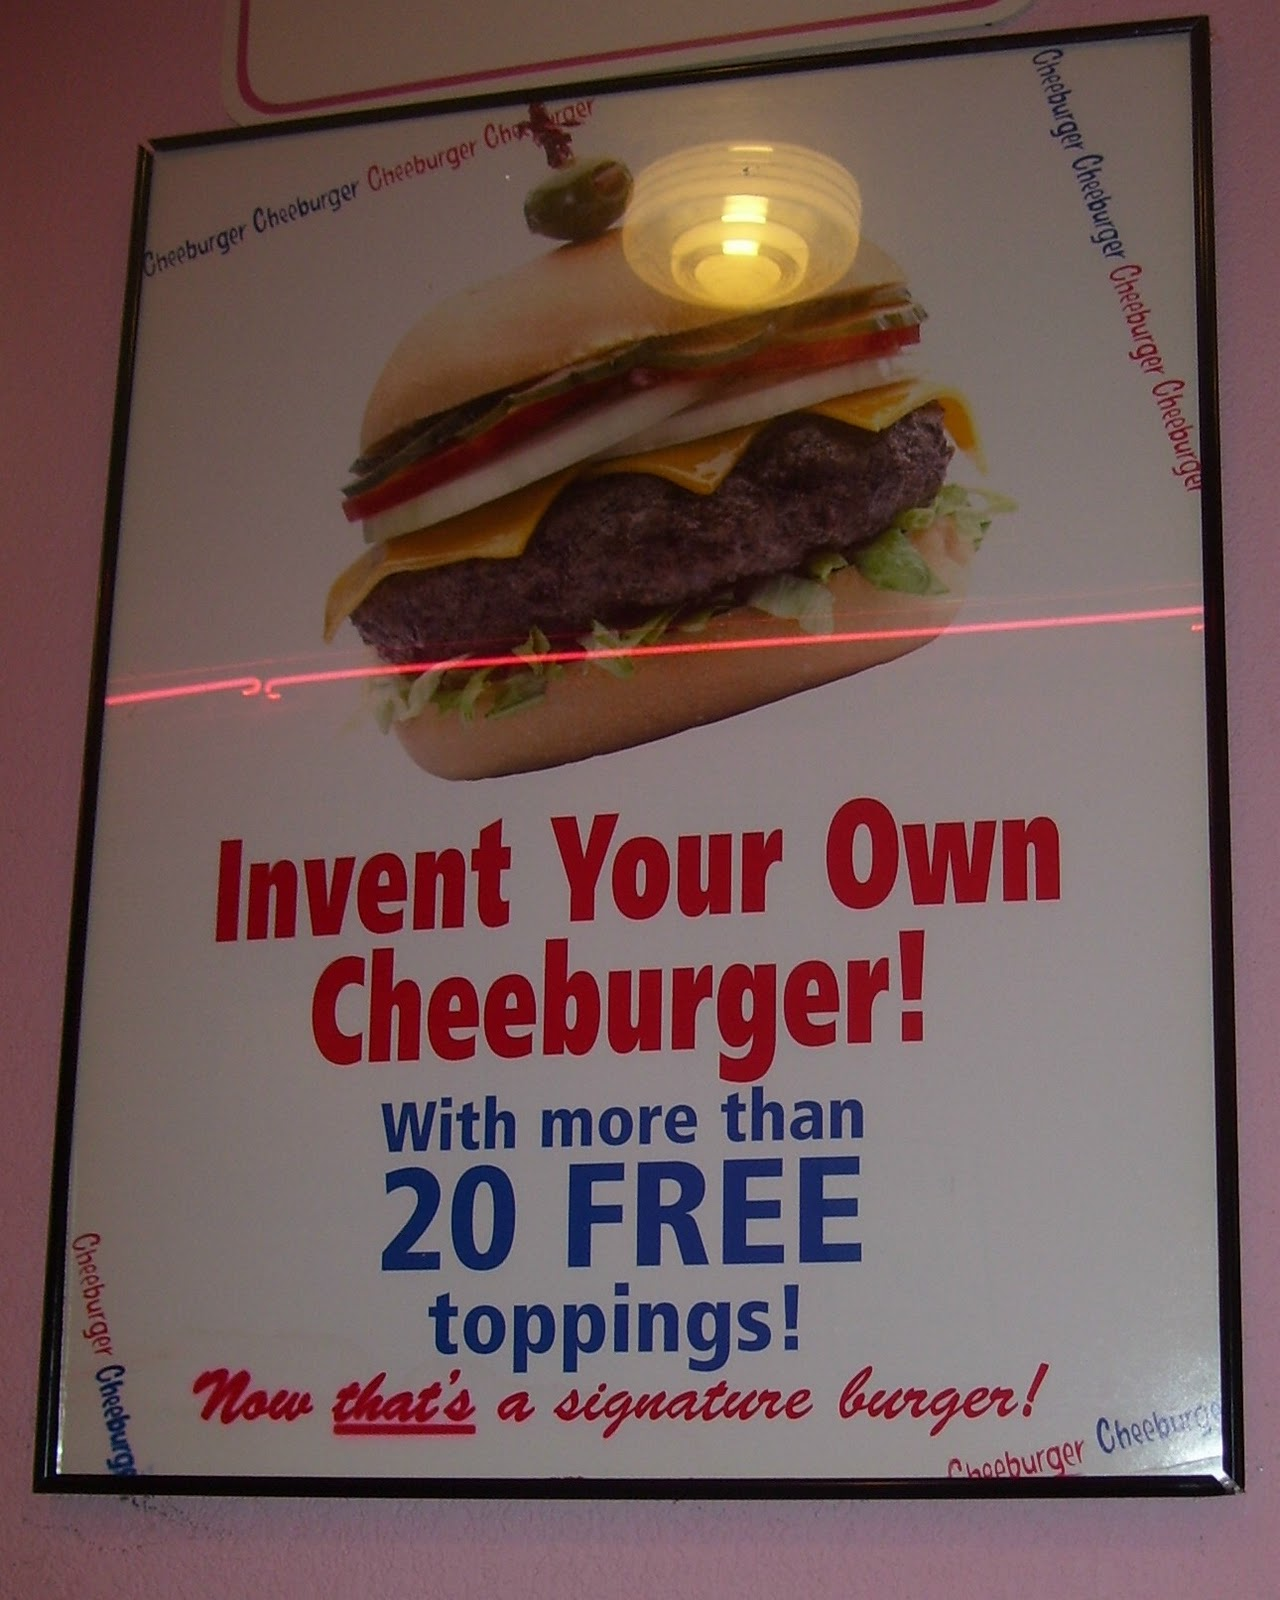 The problem with dating today cheeburger